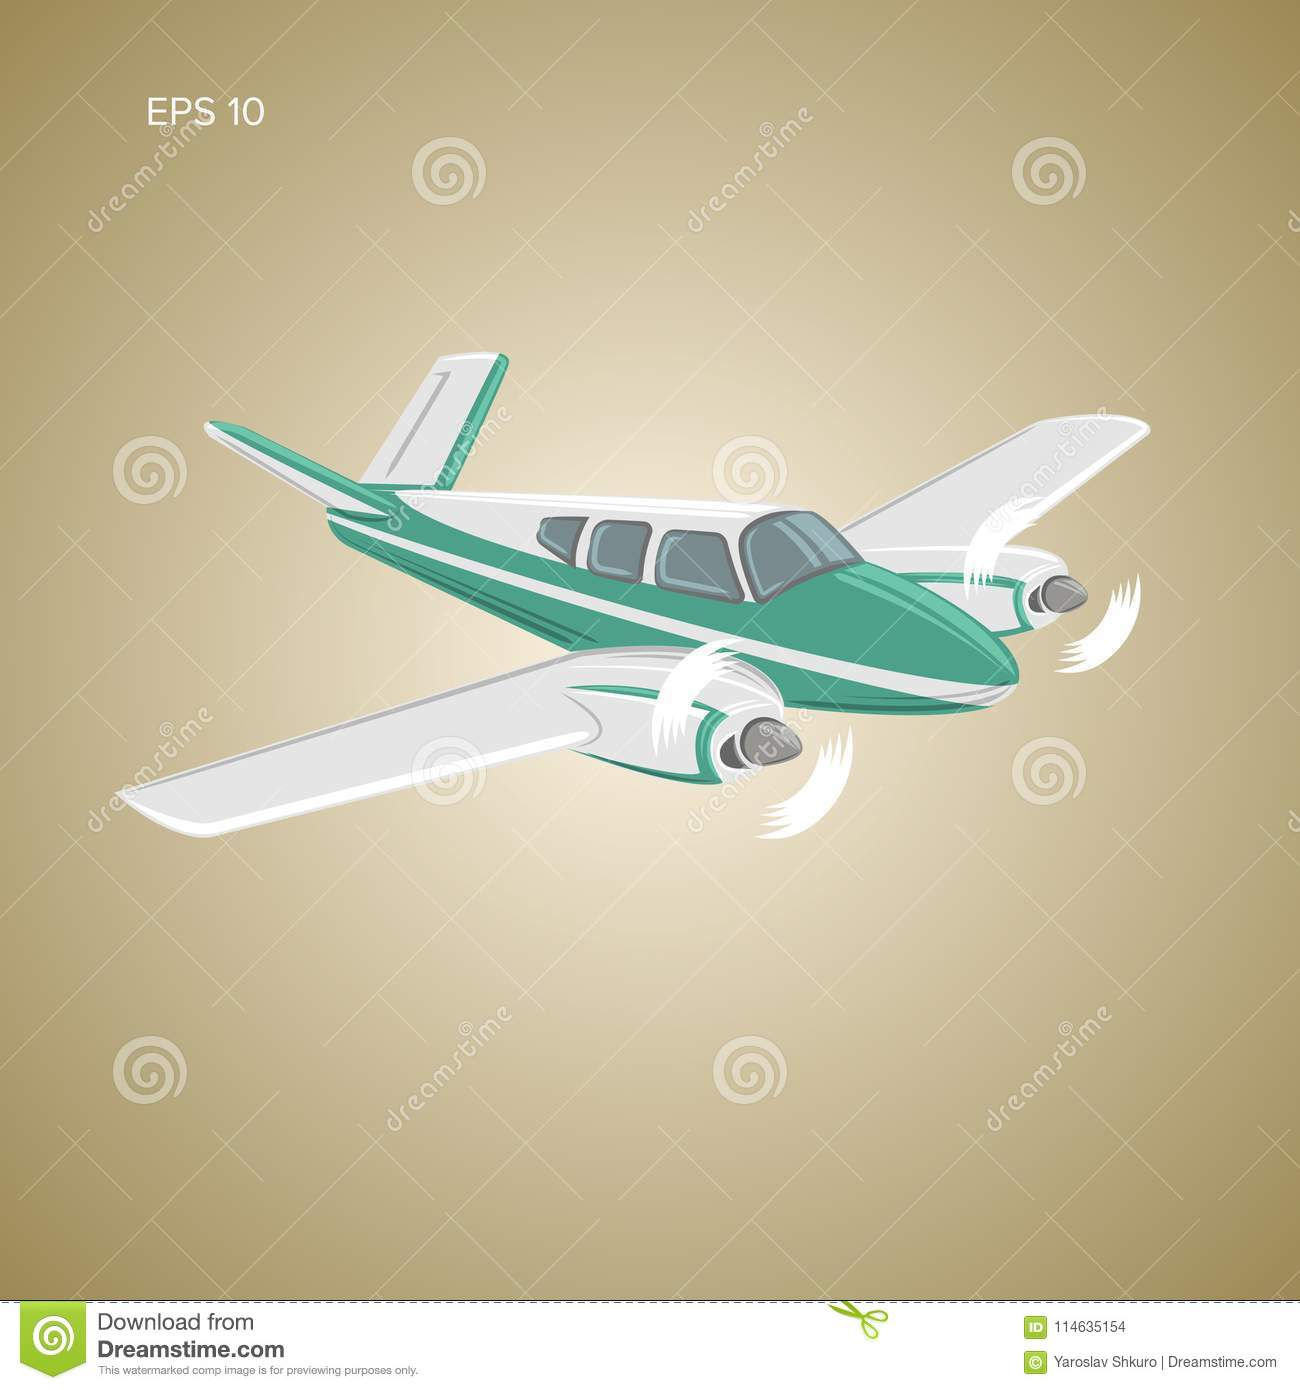 Small plane vector illustration. Twin engine propelled passenger aircraft.